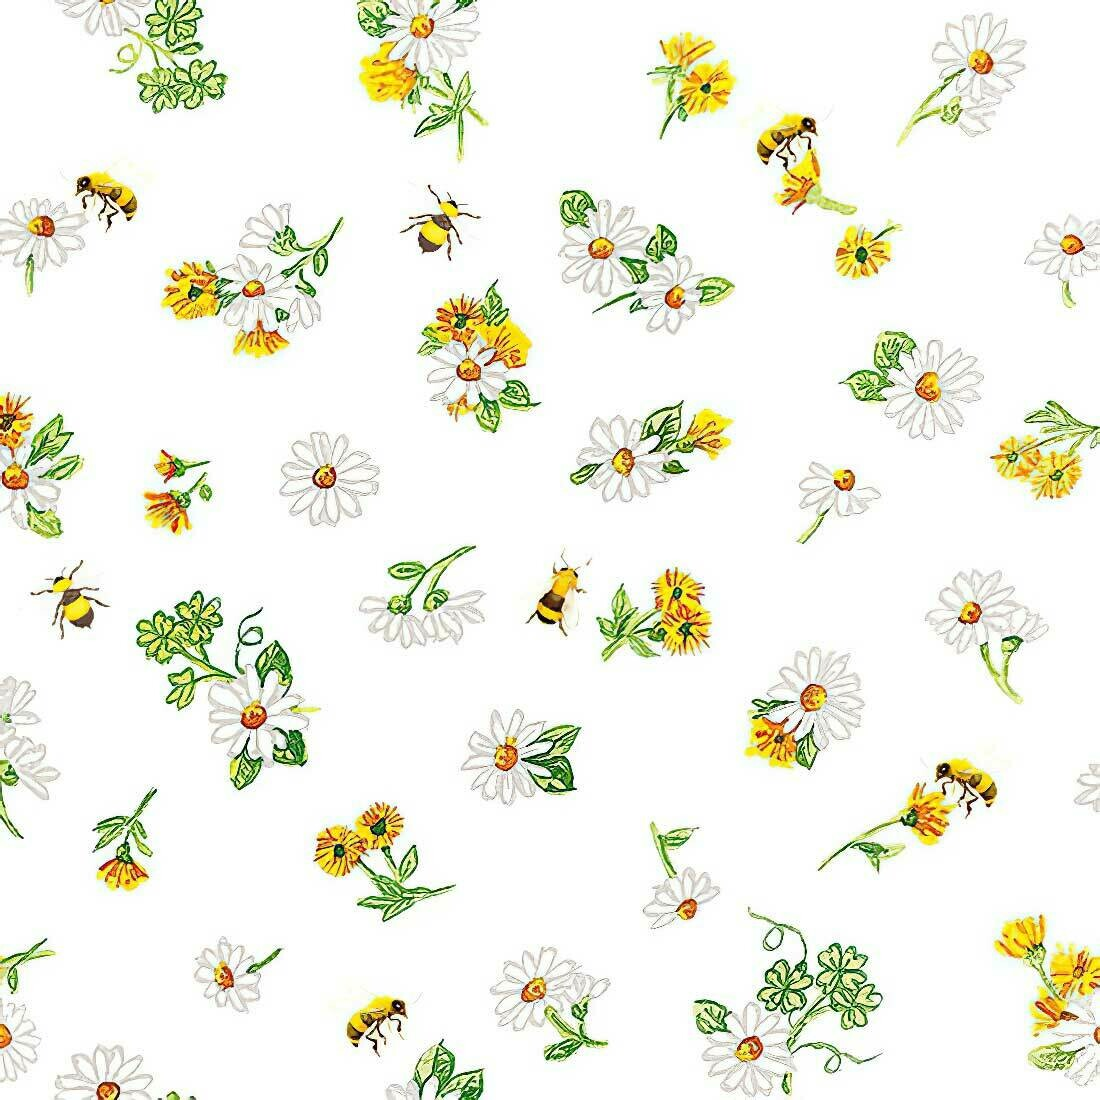 Decoupage Paper Napkins - Floral - Daisy All Over 13x13 (1 Sheet)